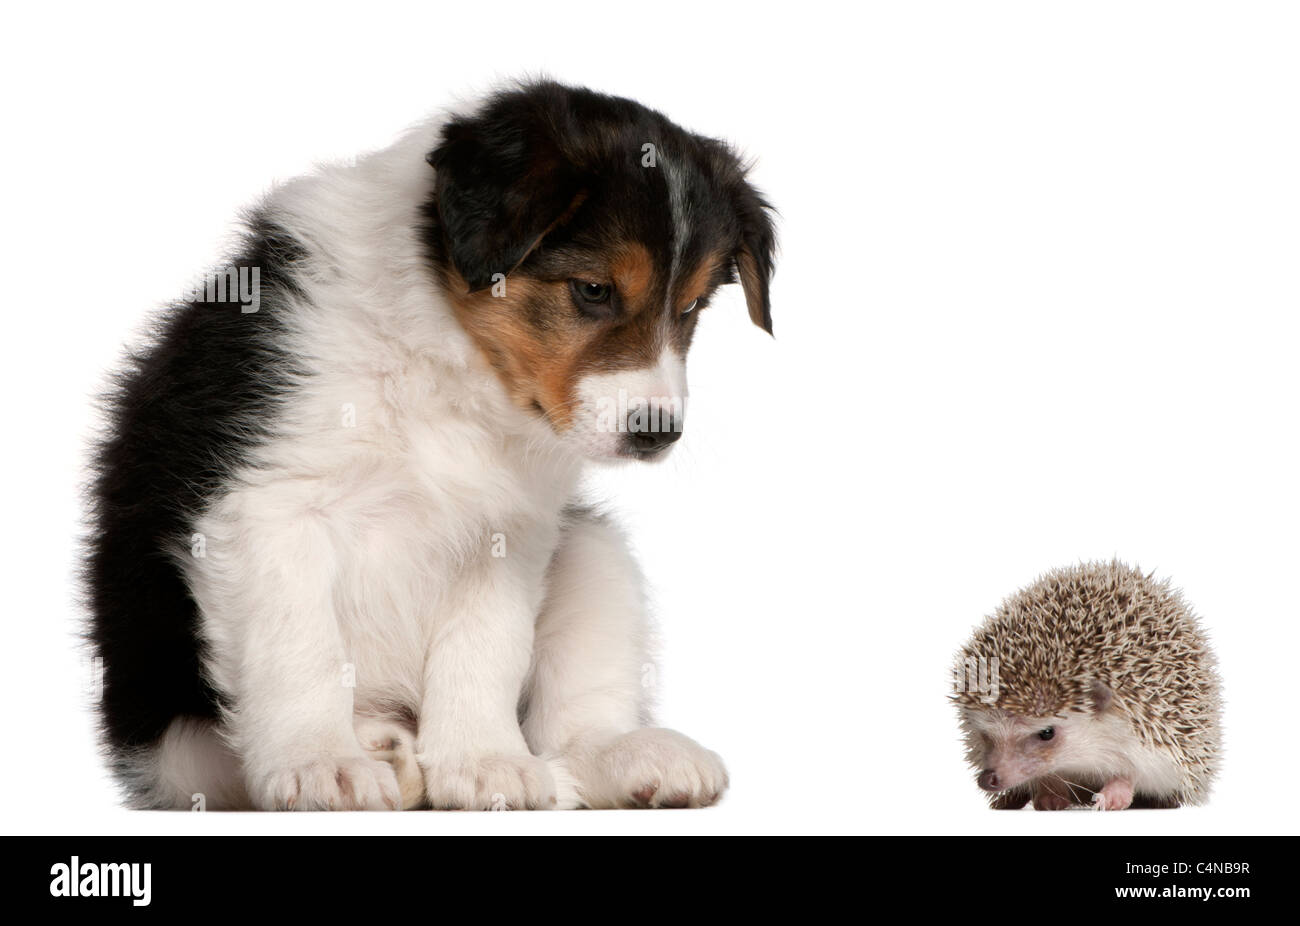 Border Collie puppy, 6 weeks old, playing with a hedgehog, 6 months old, in front of white background - Stock Image